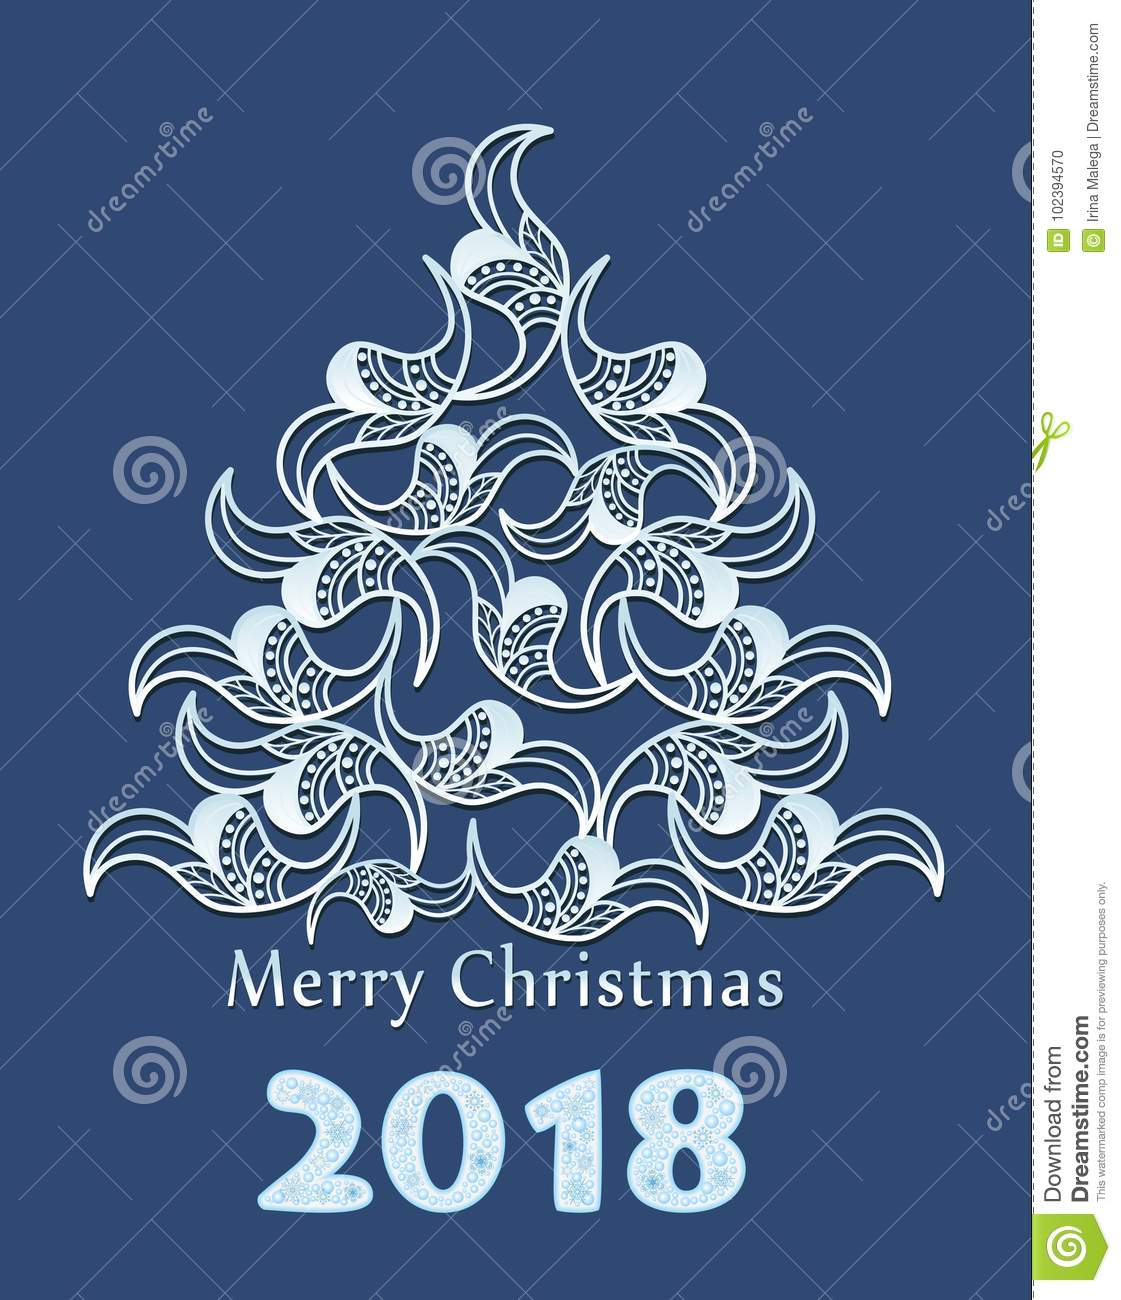 New year creative design happy new year 2018 text design vector new year creative design happy new year 2018 text design vector kristyandbryce Choice Image